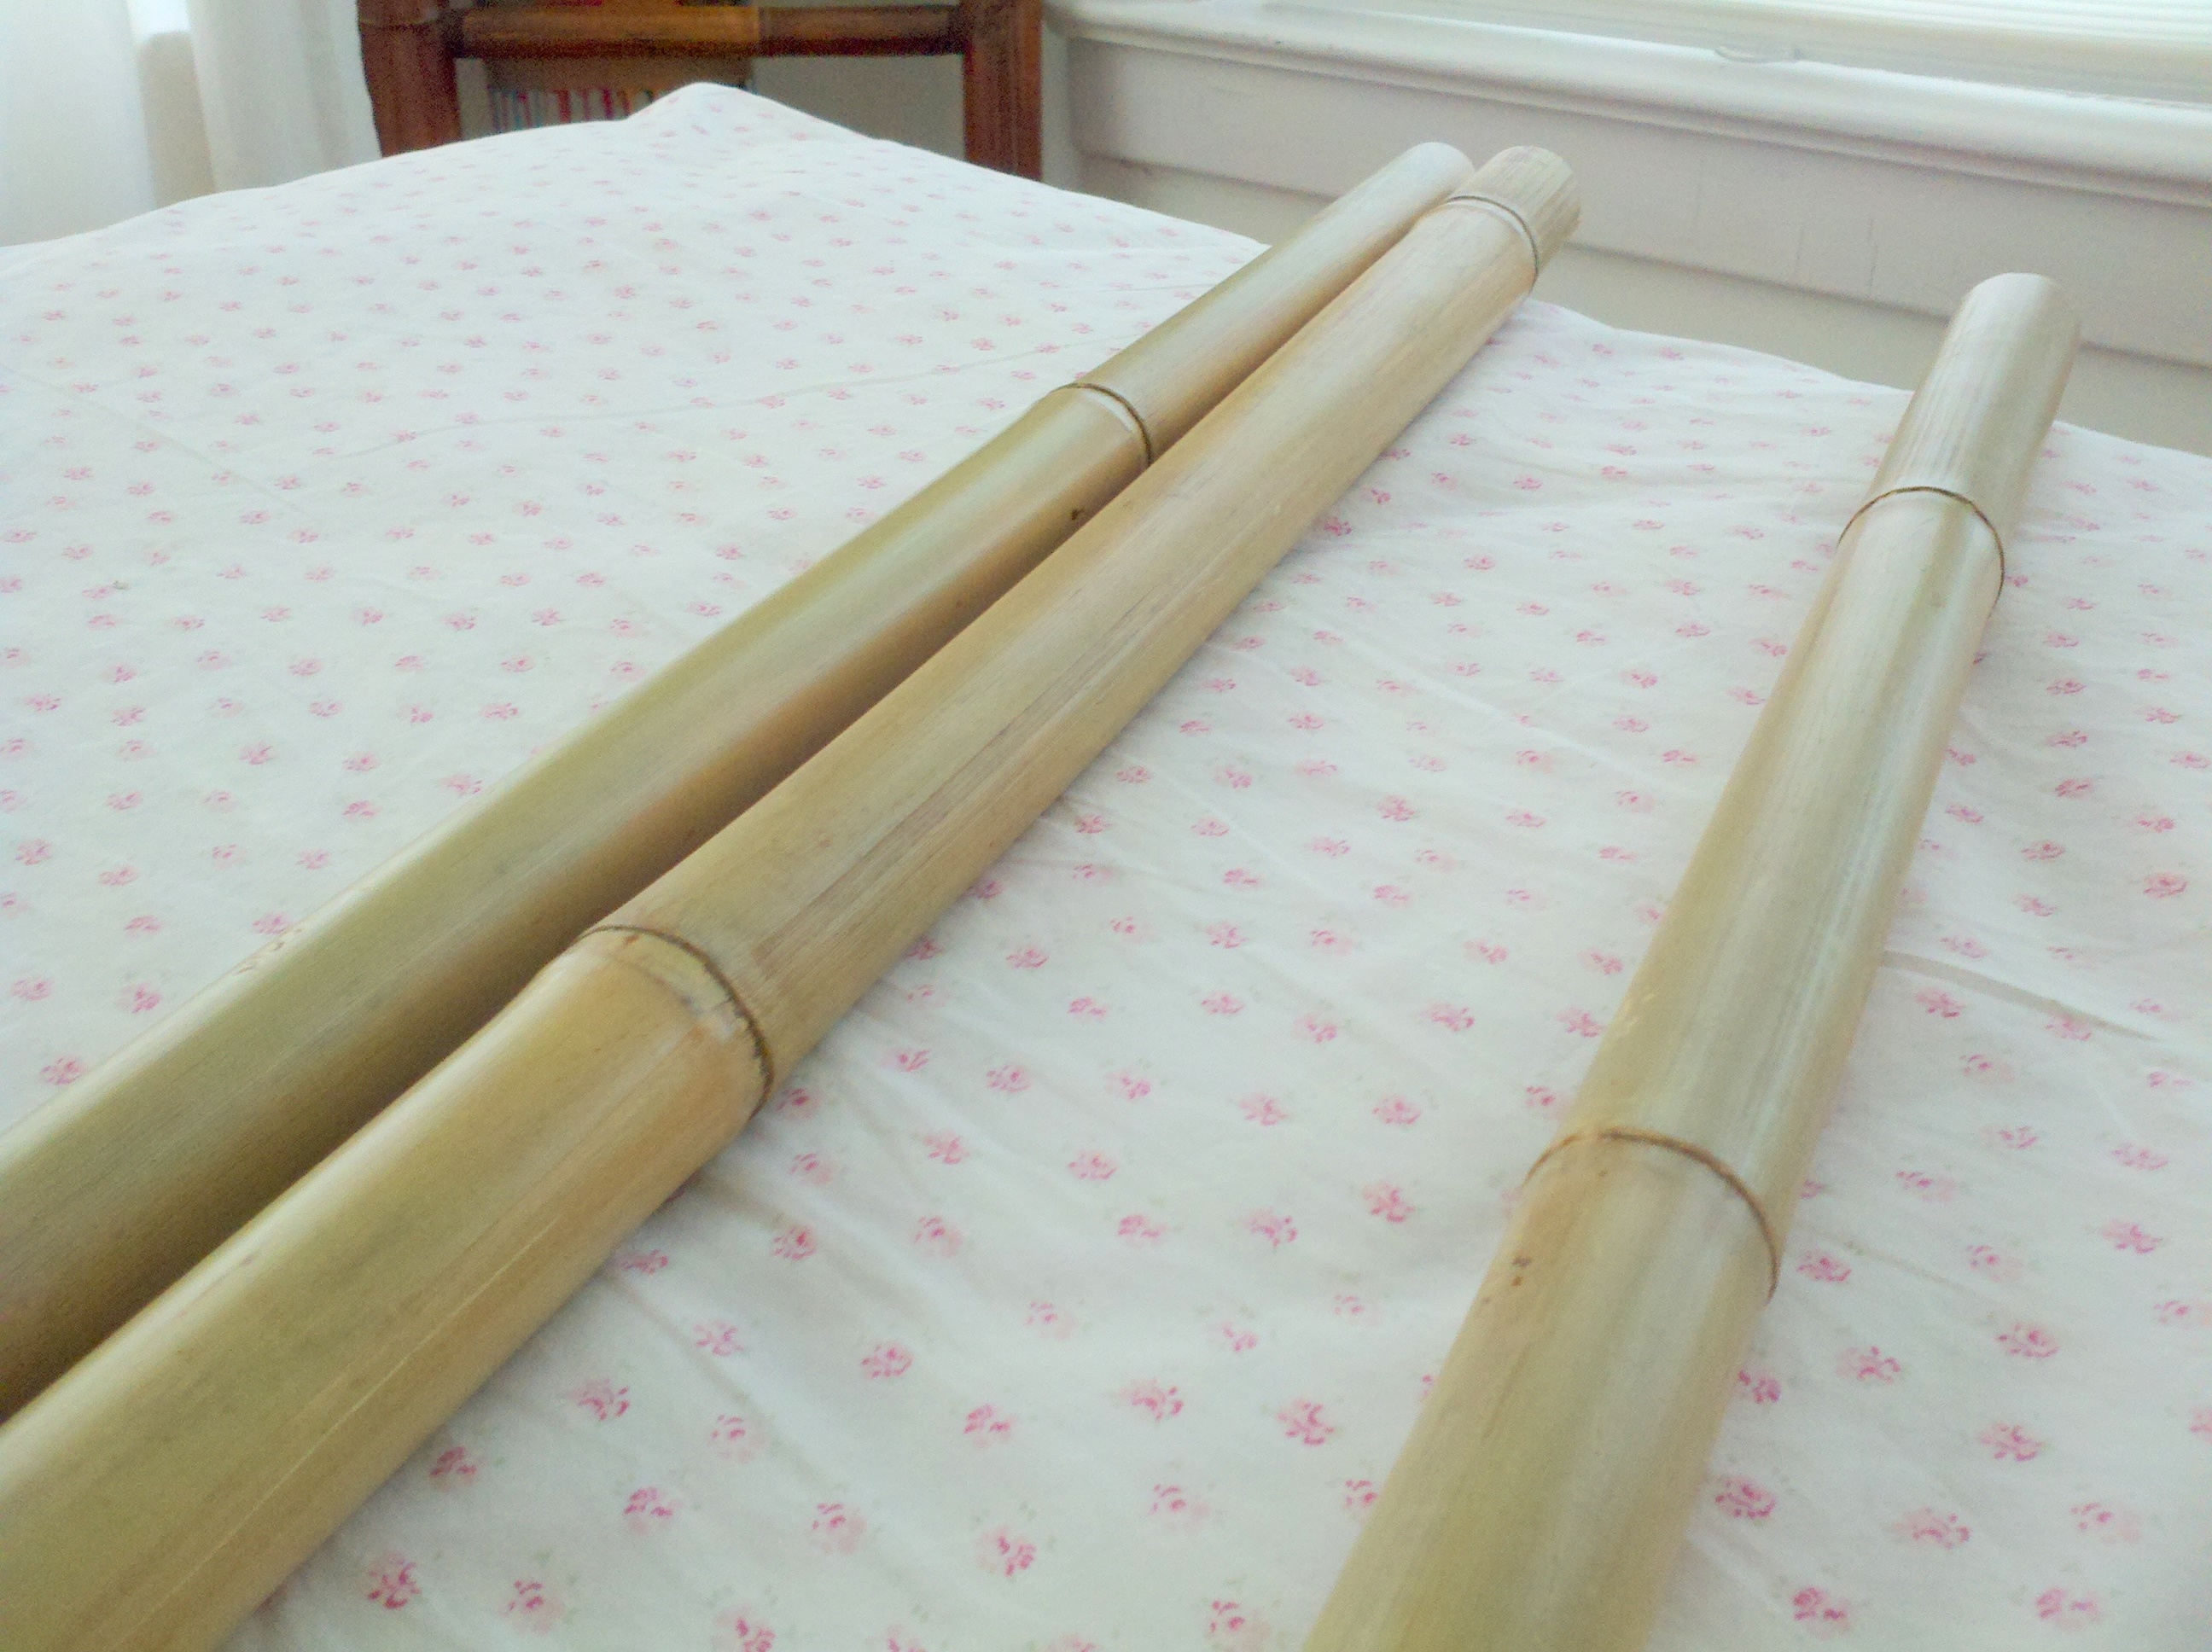 Bamboo curtain rods diy - Next Came The Hunt For Curtains I Didn T Want Full Curtains I Didn T Even Want Curtains That Were Going To Be Showcased Didn T Want Them To Distract